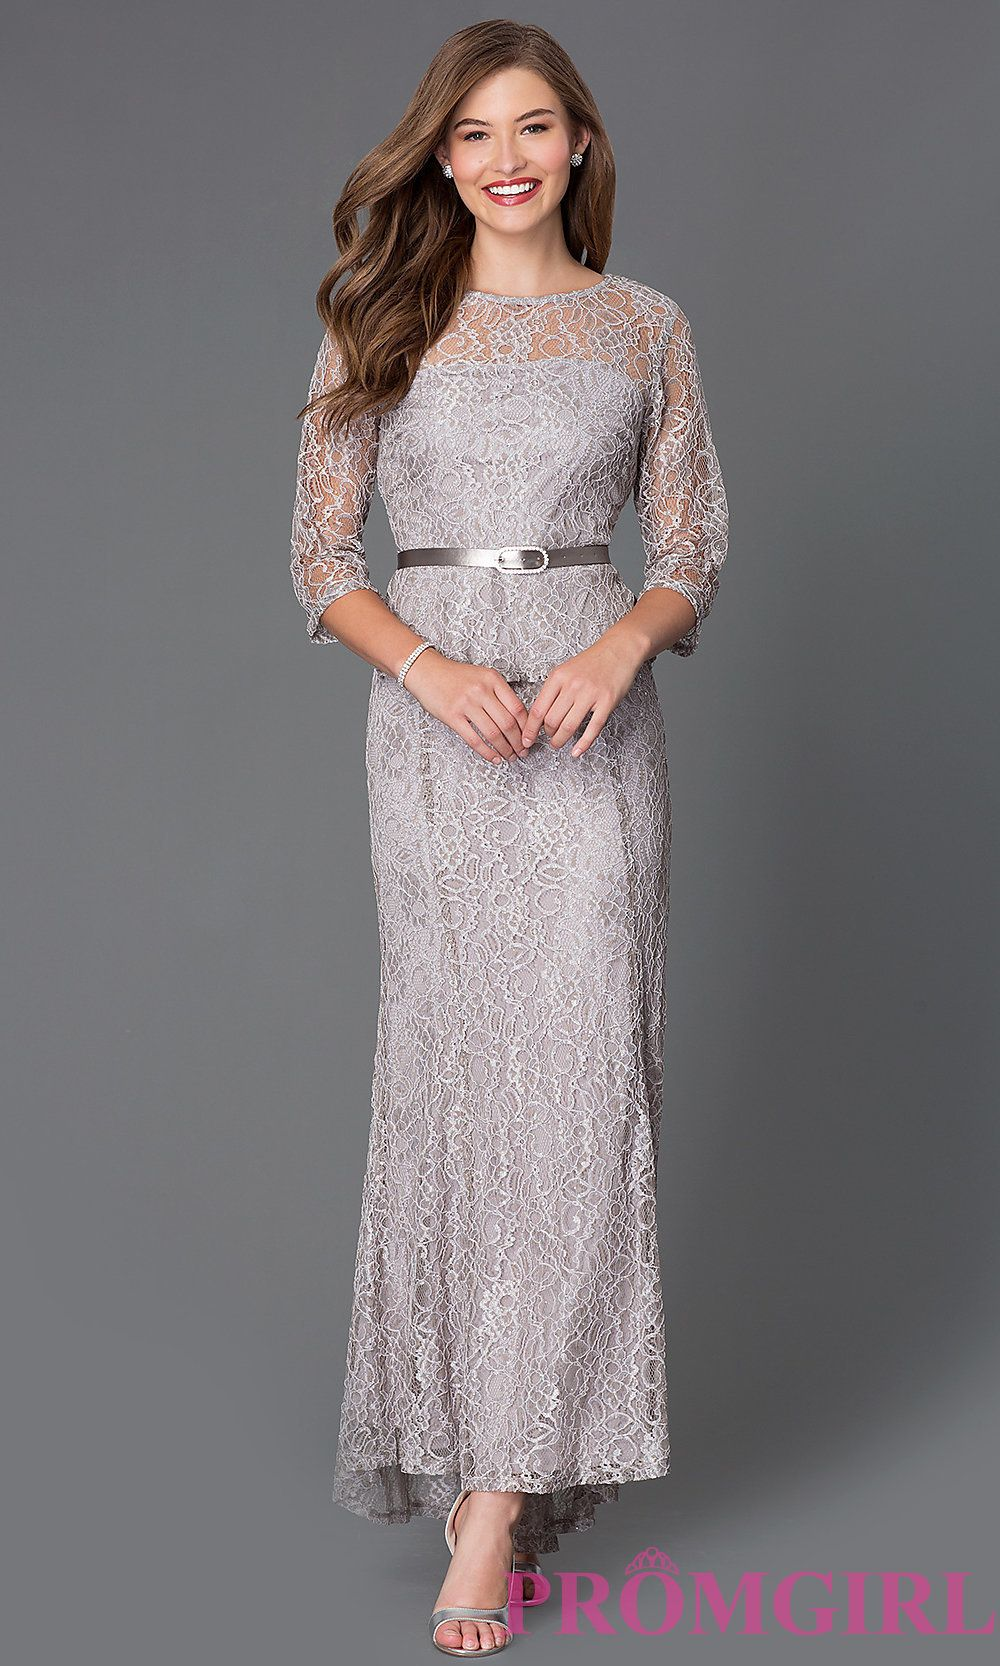 Cheap silver dresses for weddings  silverdressSFag   Mother of the bride